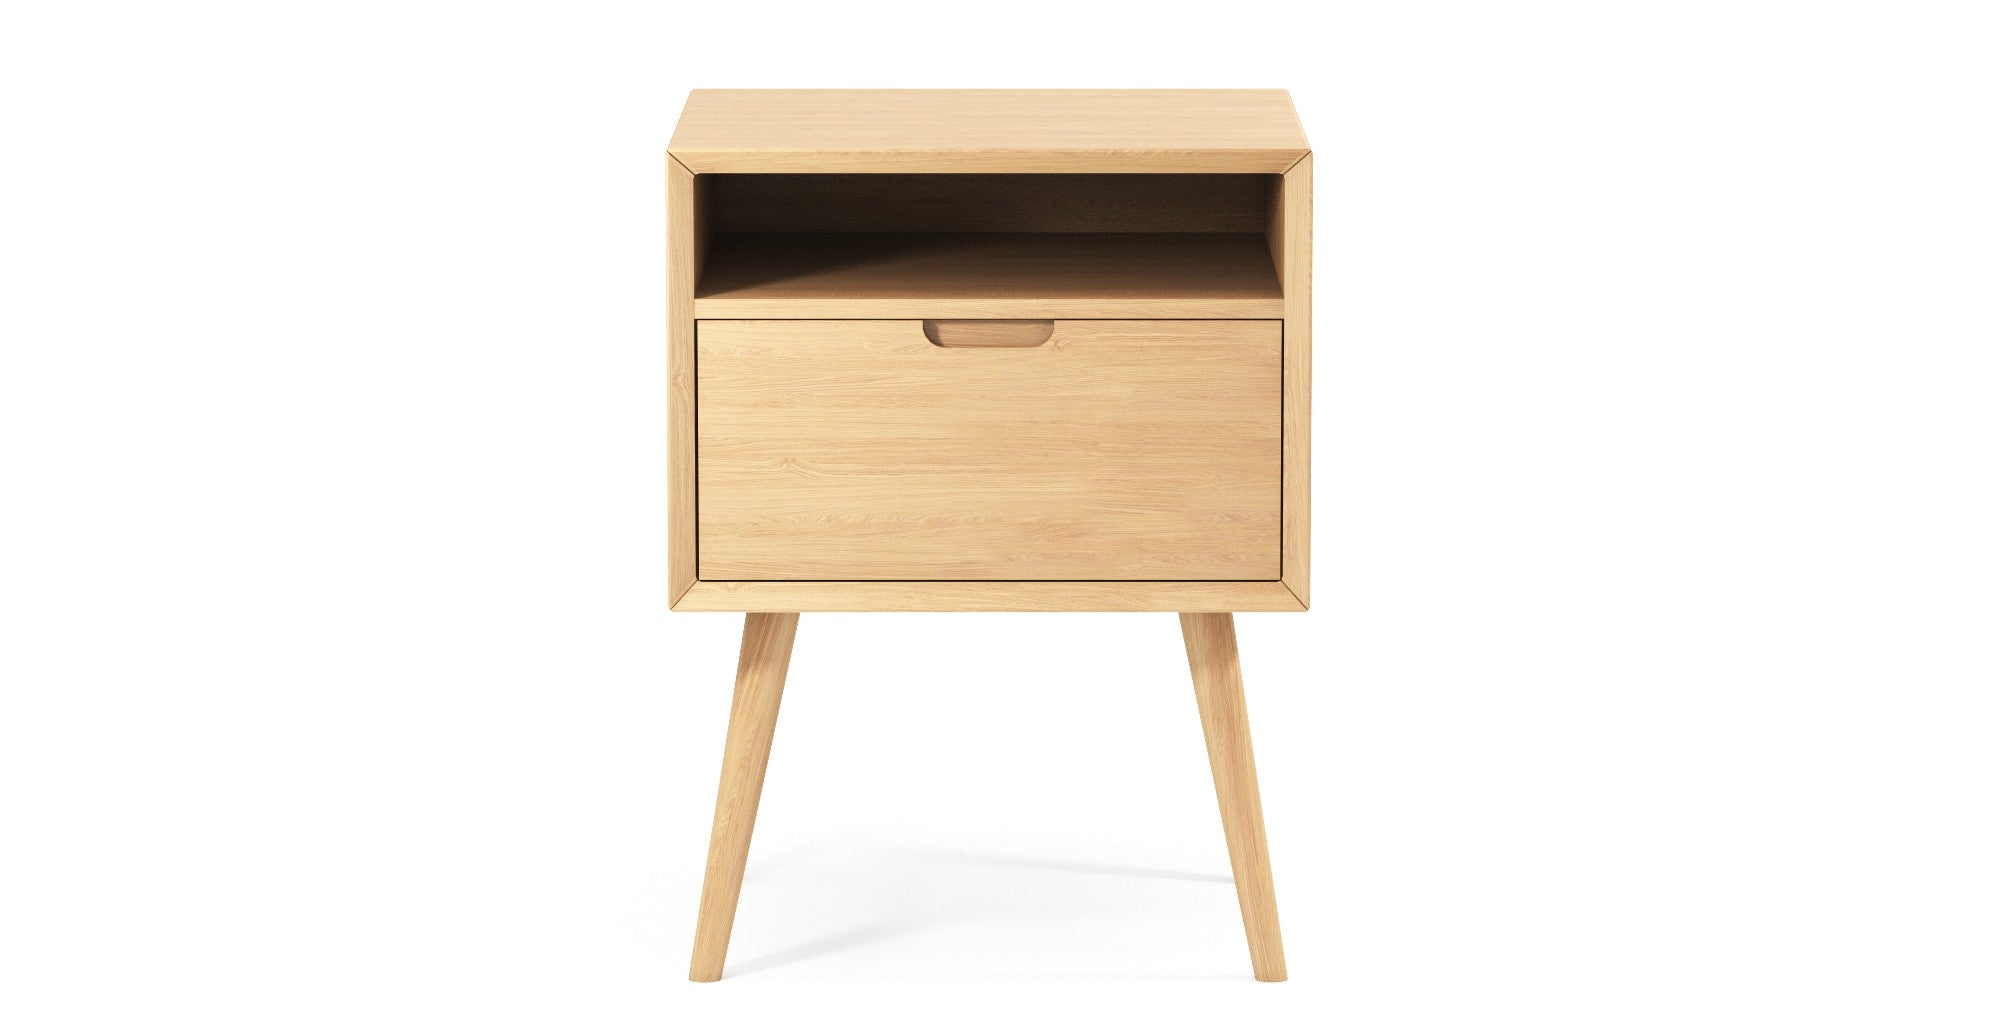 Second Hand Bedroom Furniture Melbourne Scandinavian Danish Furniture Designer Styles Online Brosa